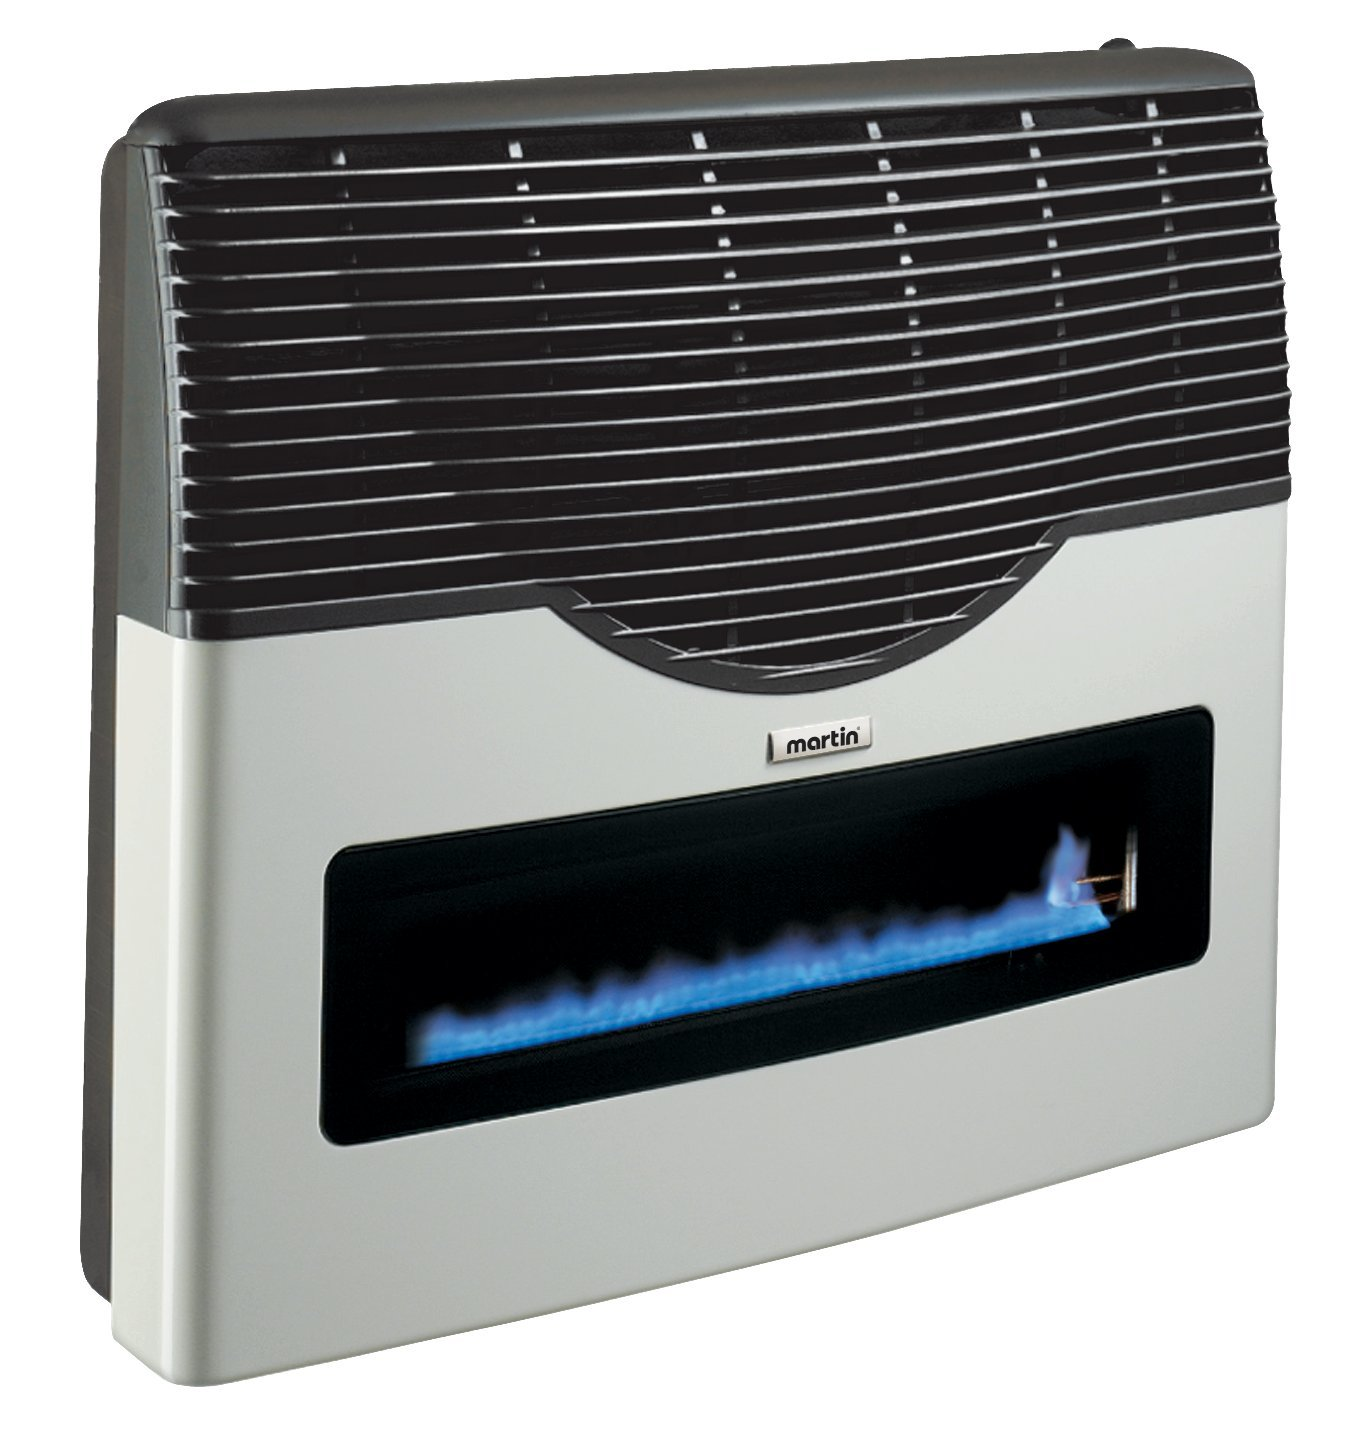 Direct Vent Propane Wall Heater built-in thermostat (low - High dial) and Exclusive Glass Ceramic Window, Clean Gas Energy | Indoor Home, Office, Garage | Easy Installation | Approved USA & CANADA